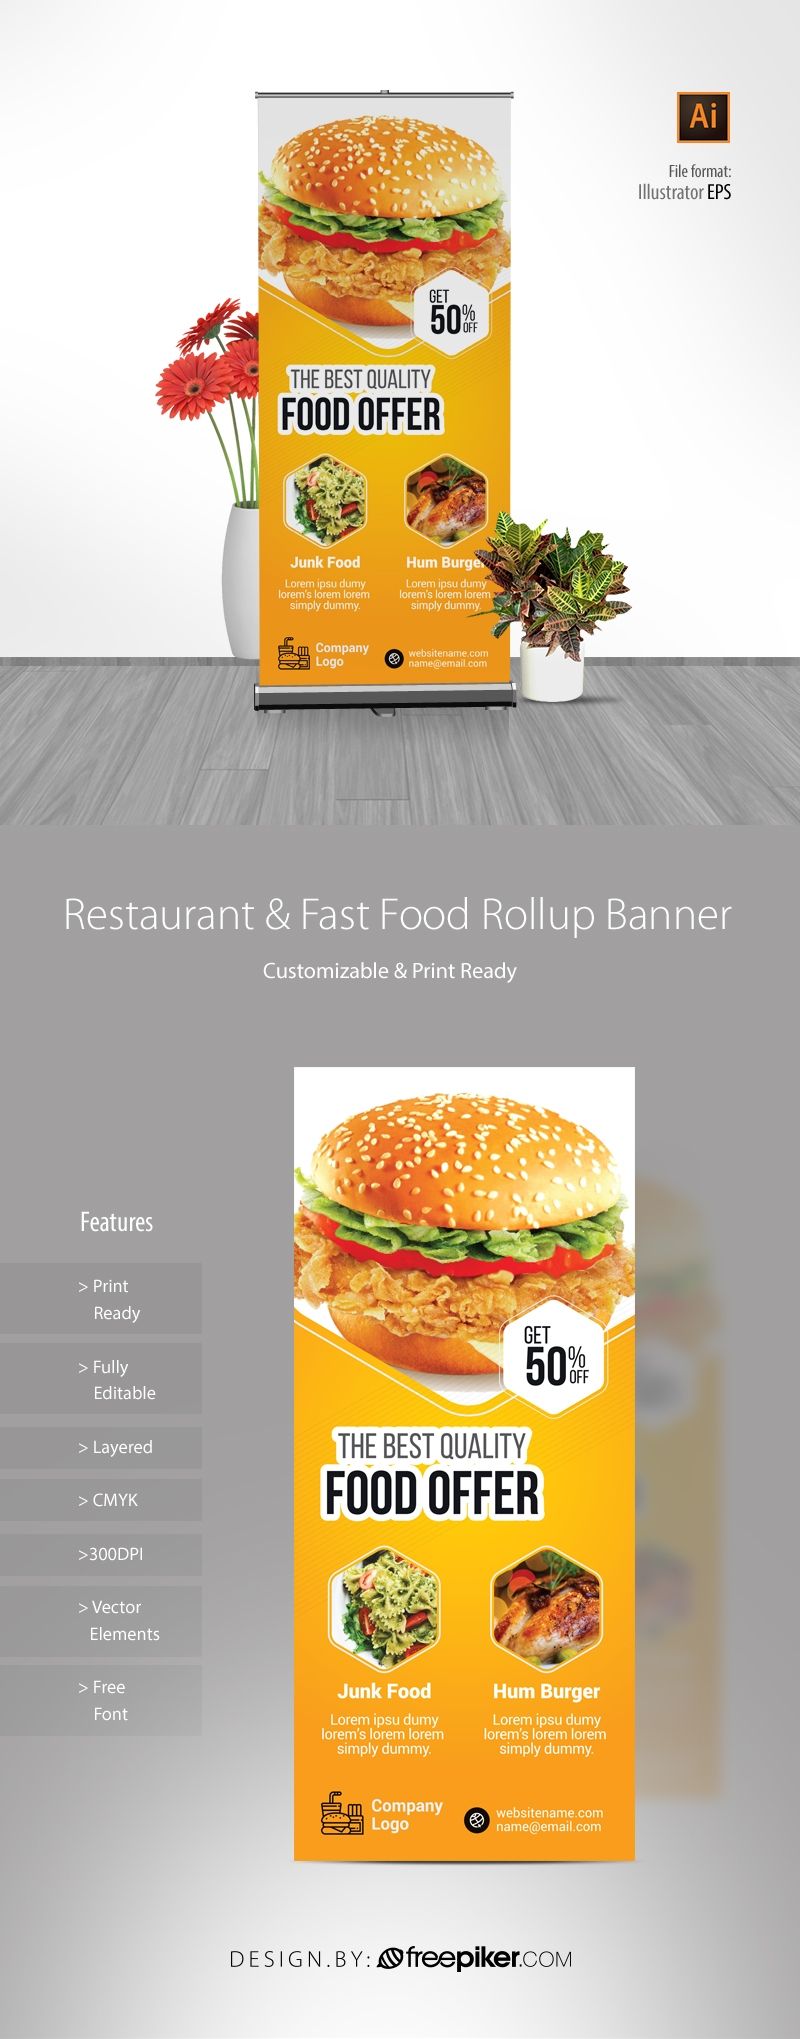 Foods and Restaurant Rollup Banner With Yellow Accent